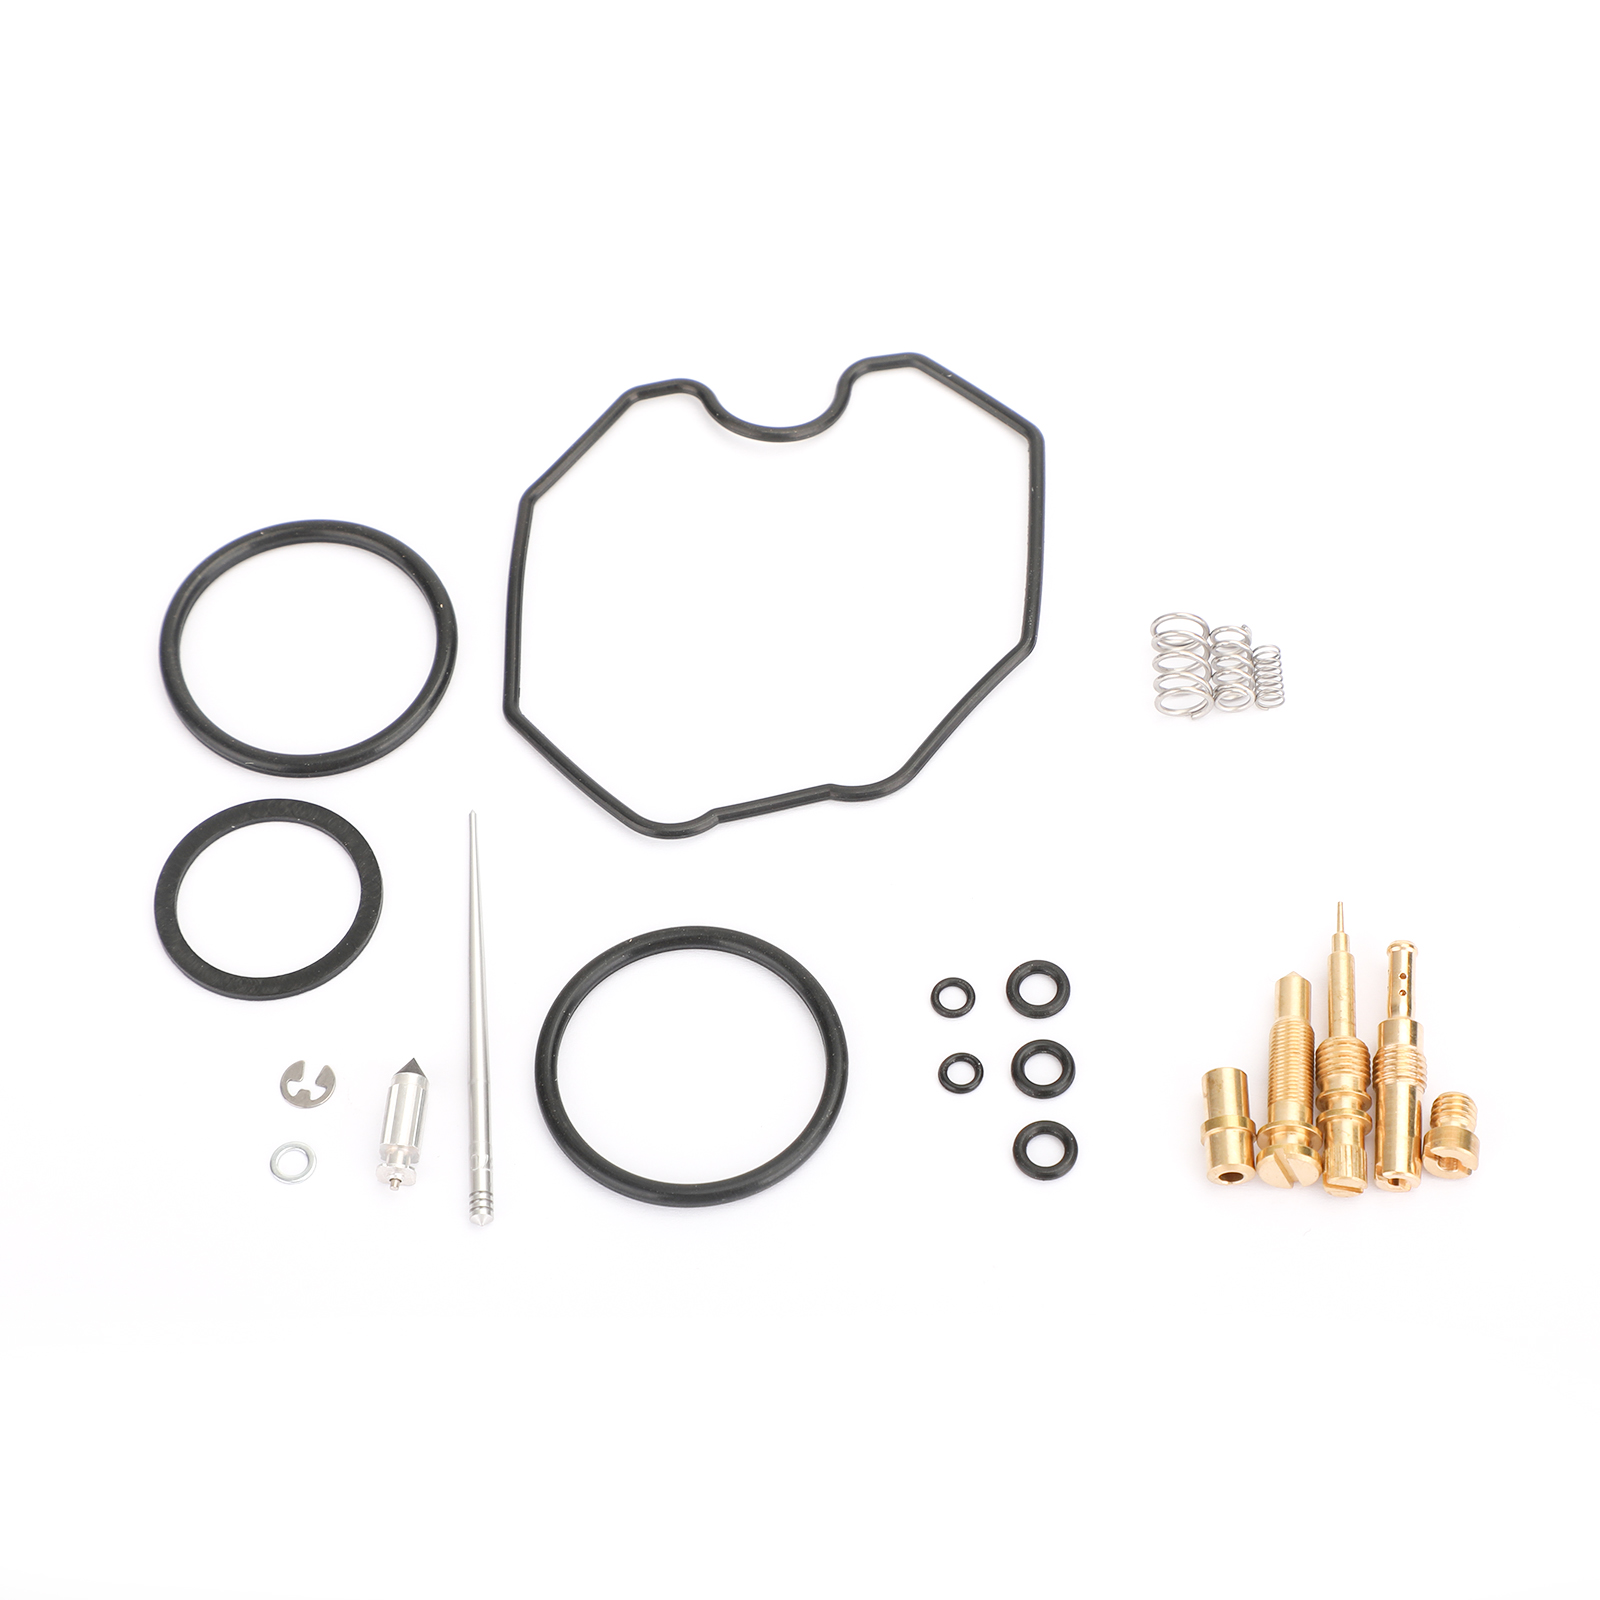 CARBURETOR REPAIR REBUILD KIT Fit 1997-2005 Honda TRX250